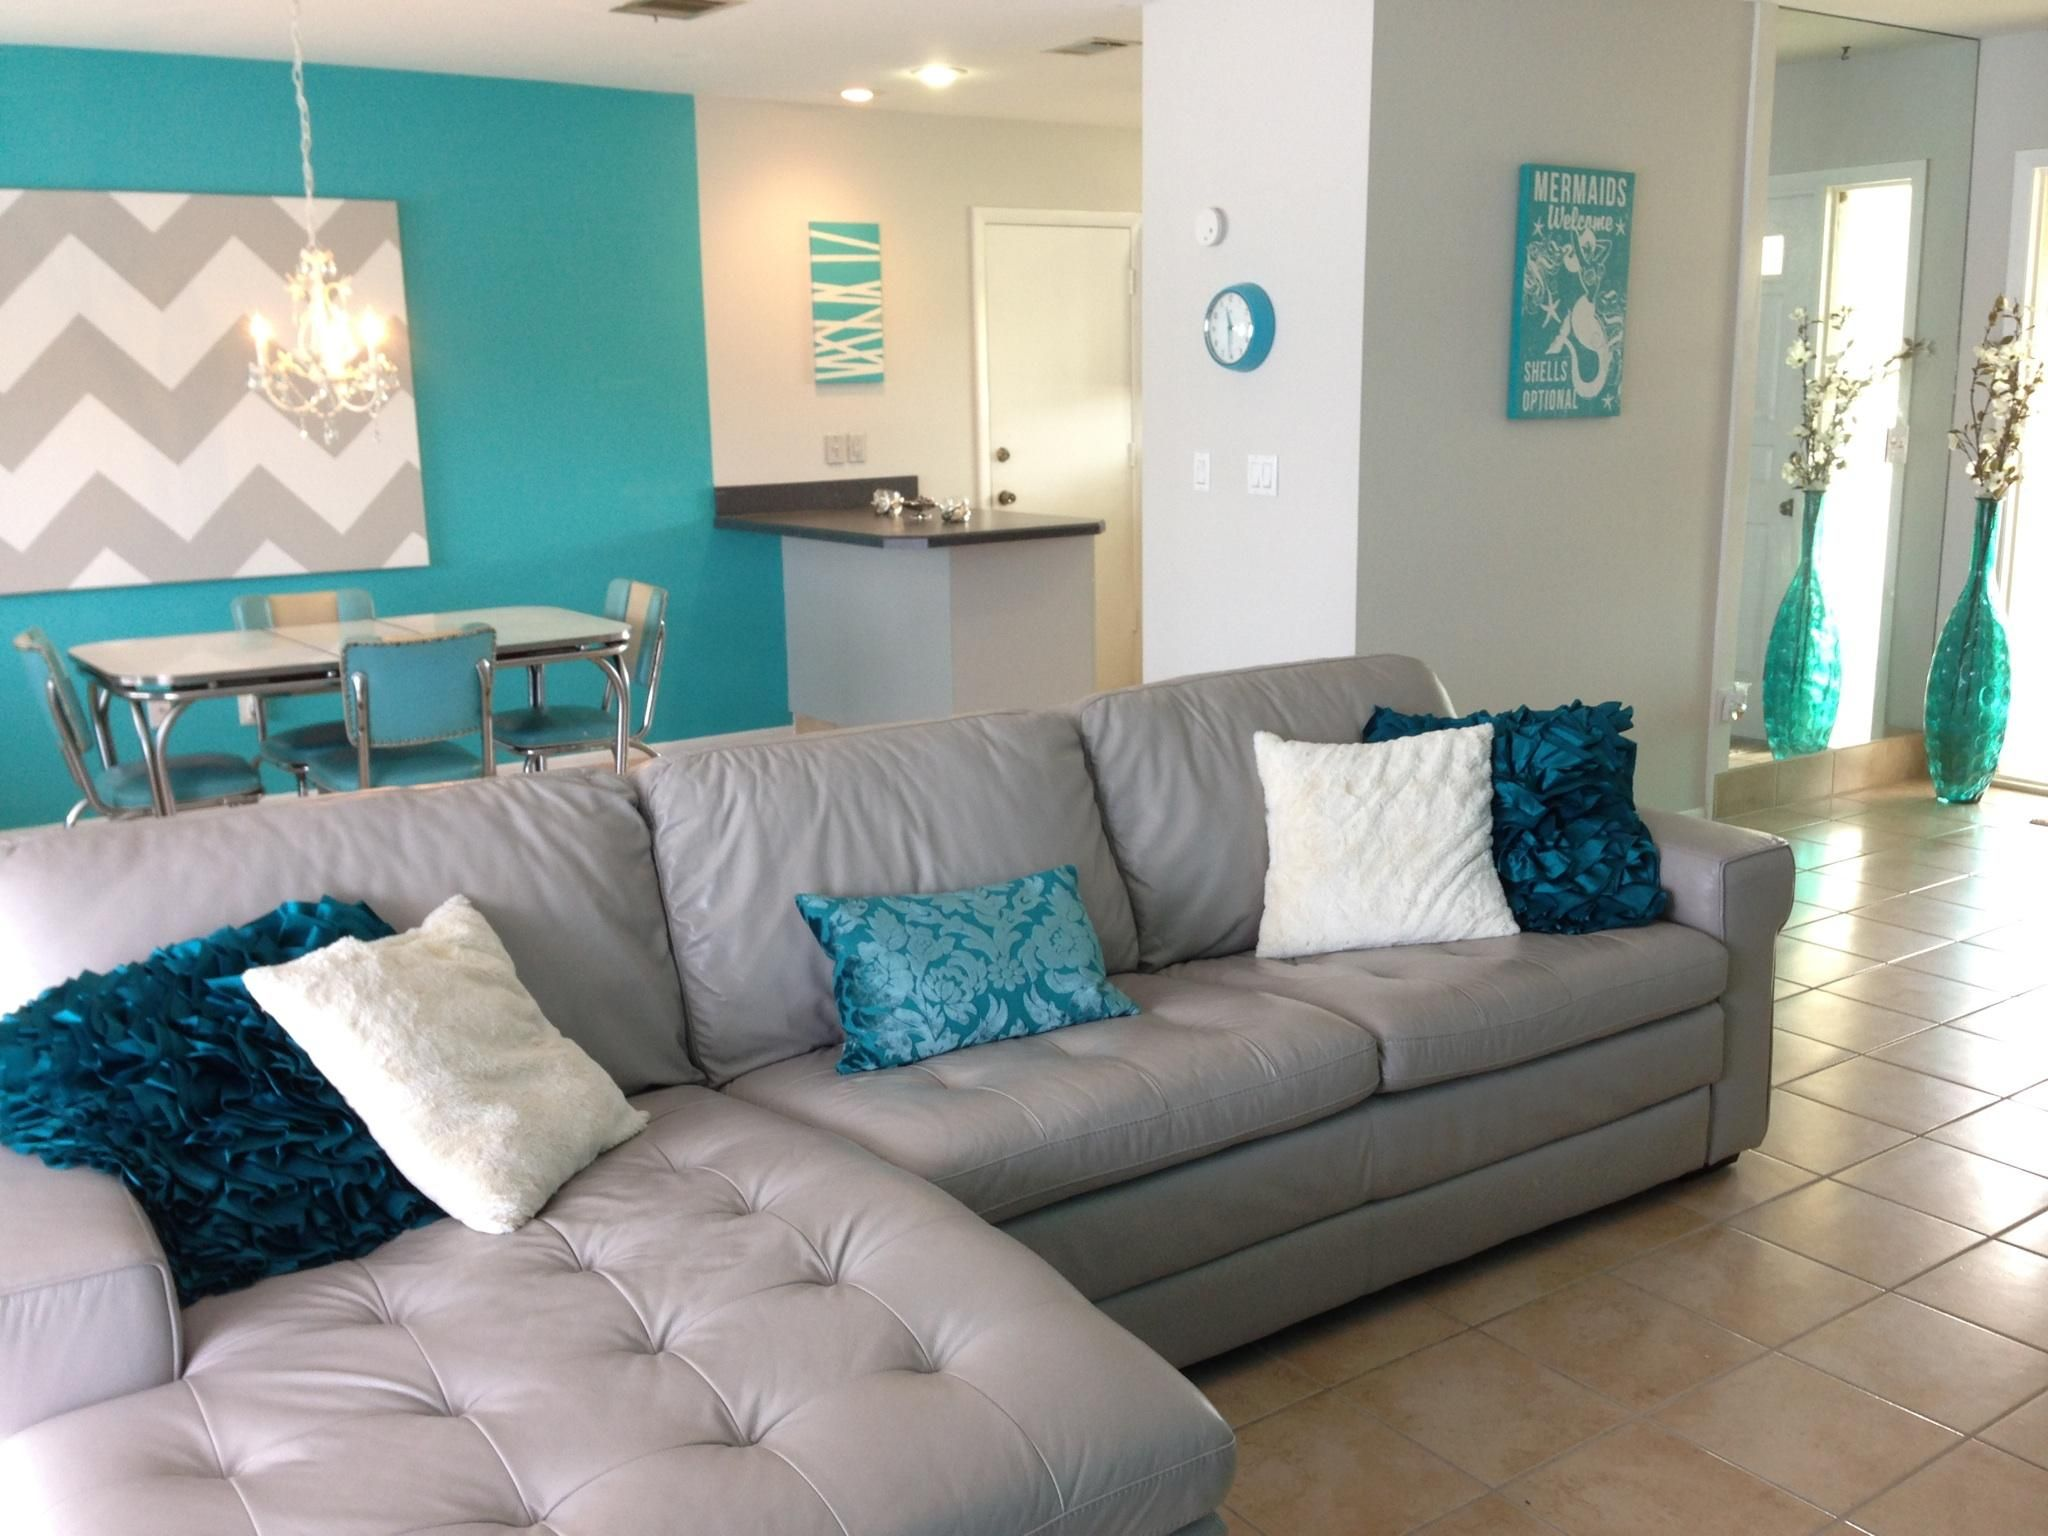 Florida home Beach house Leather couch Homemade art Tan and teal